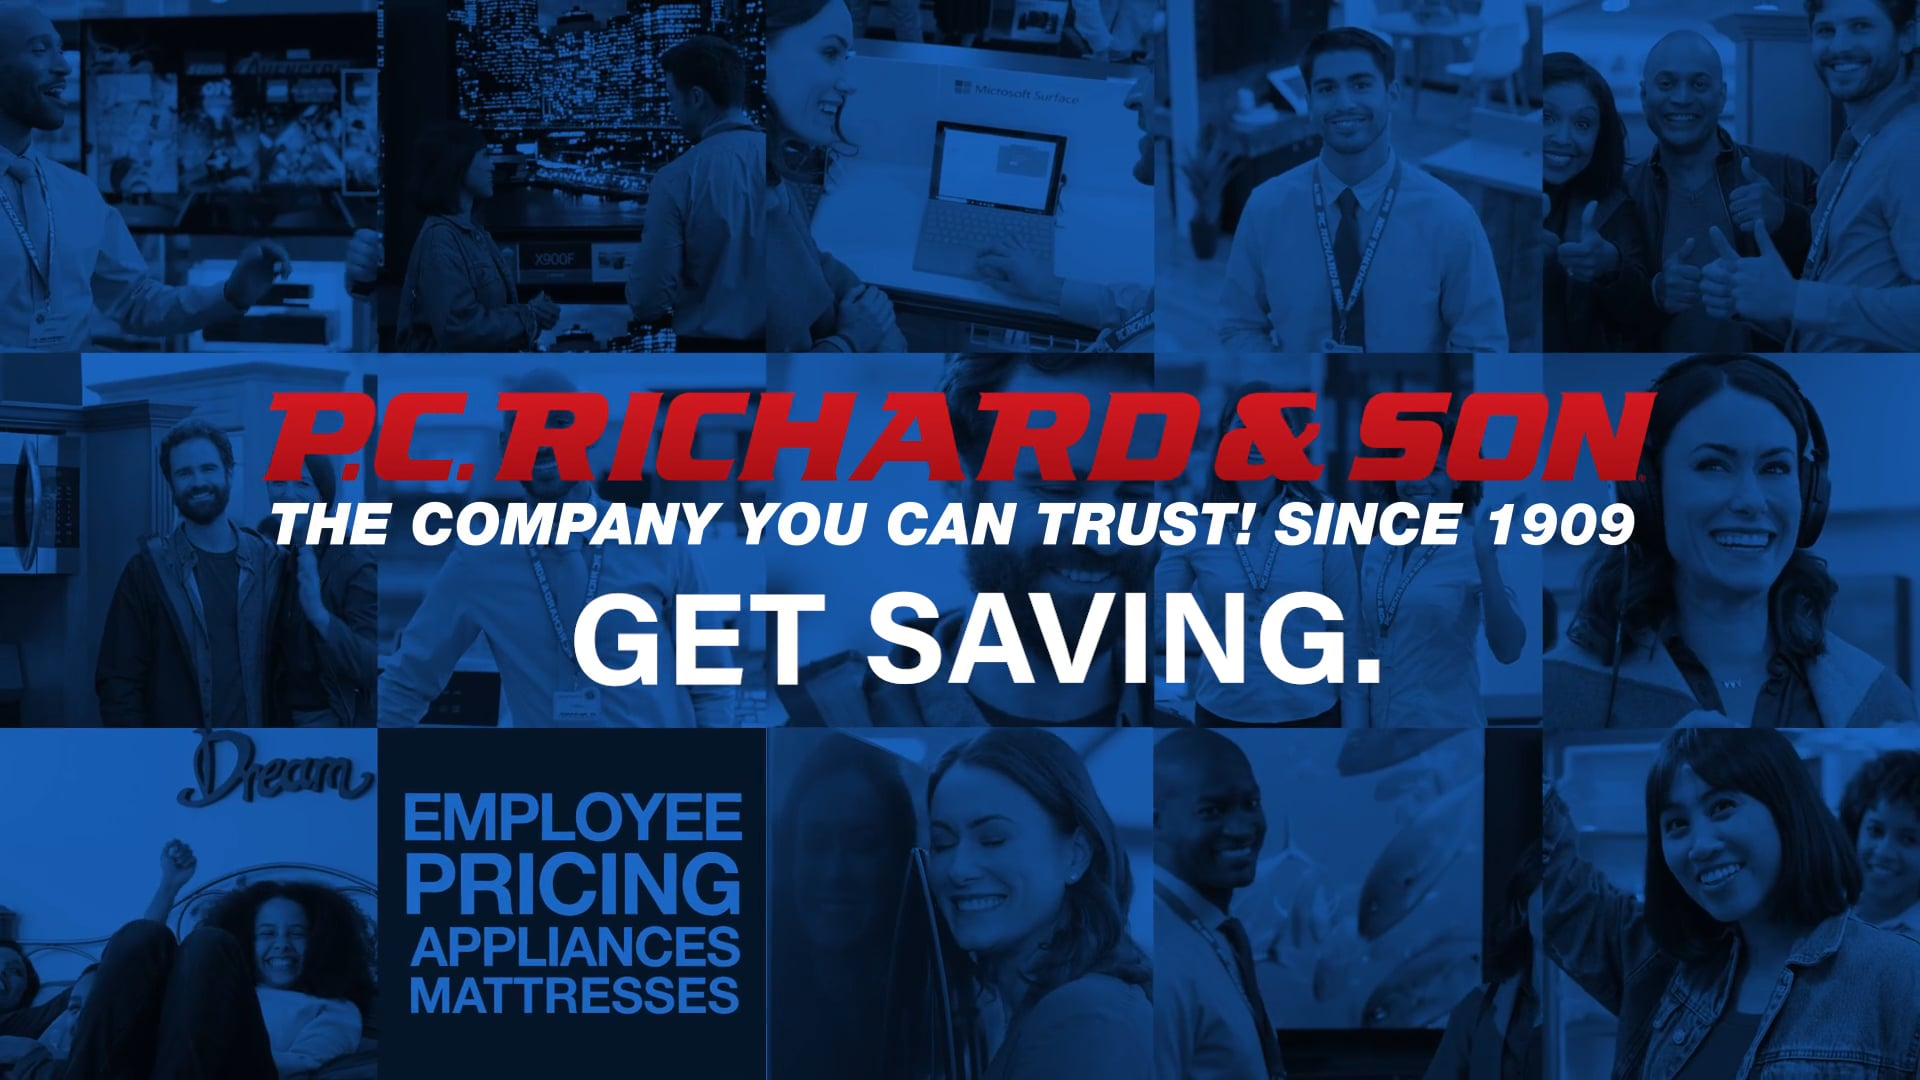 PC Richard & Sons - Employee Pricing Appliance :30